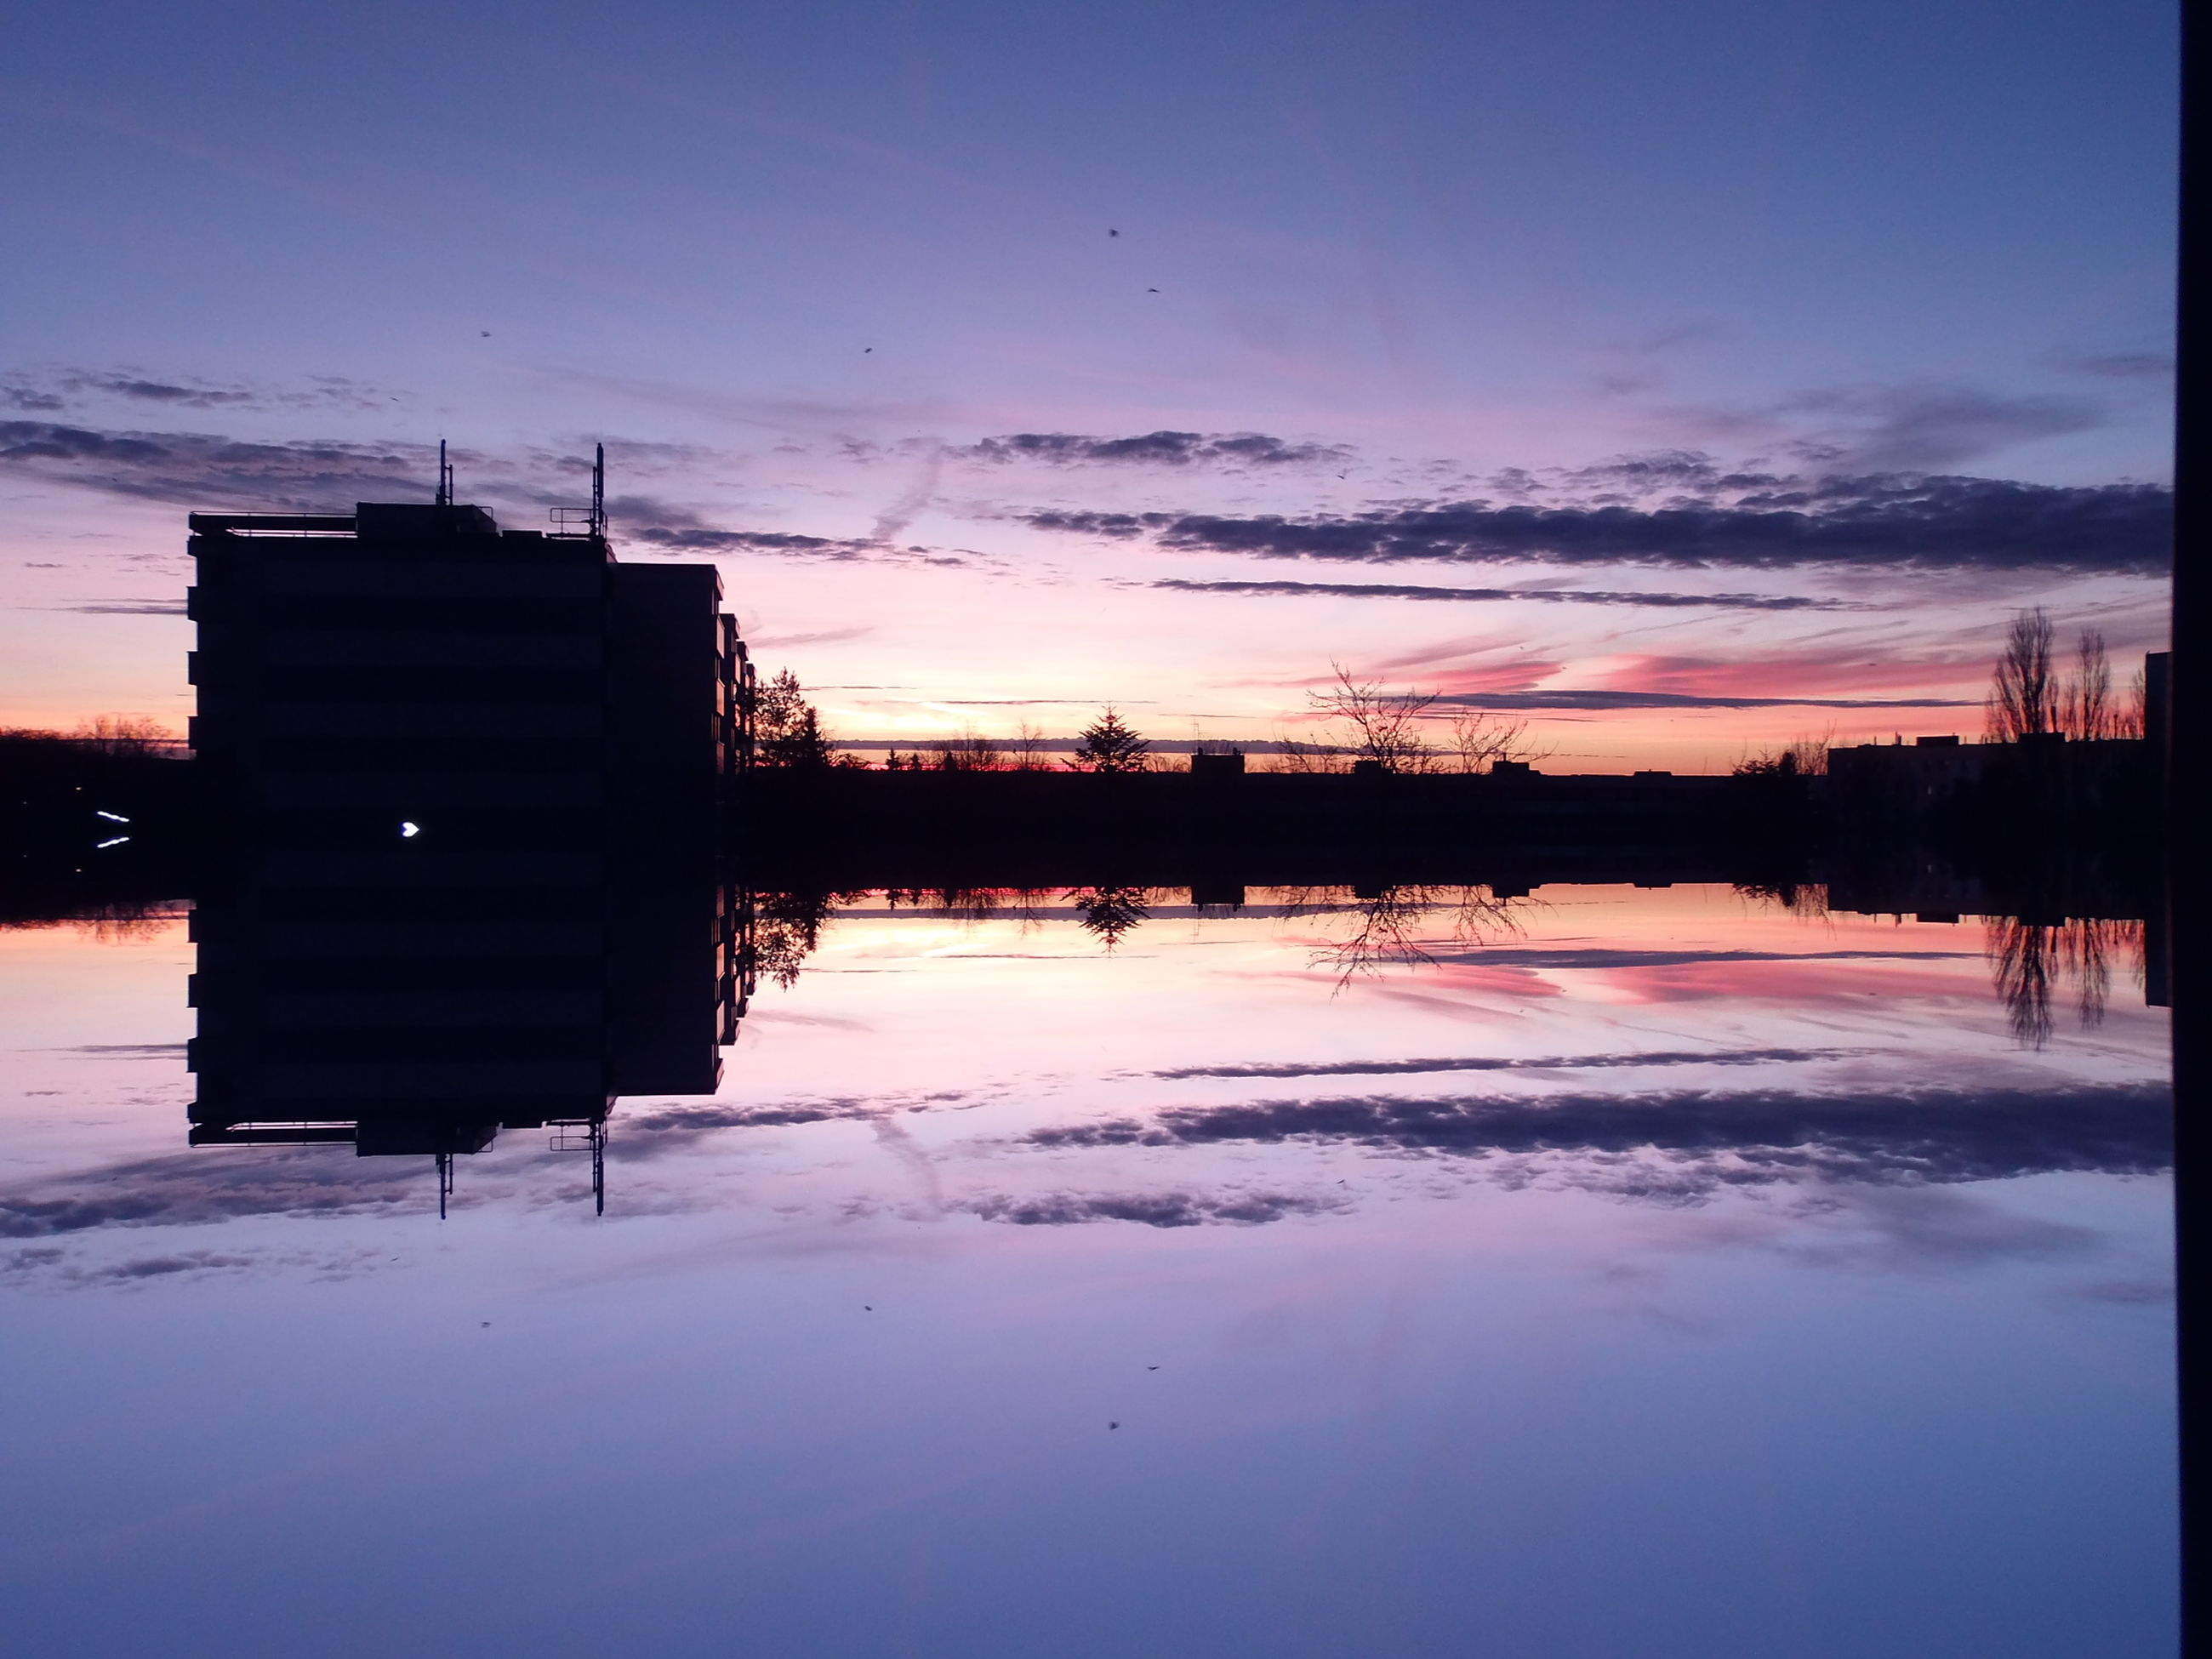 sunset, winter, cold temperature, snow, sky, reflection, water, silhouette, built structure, season, weather, dusk, building exterior, tranquility, tranquil scene, scenics, architecture, cloud - sky, beauty in nature, lake